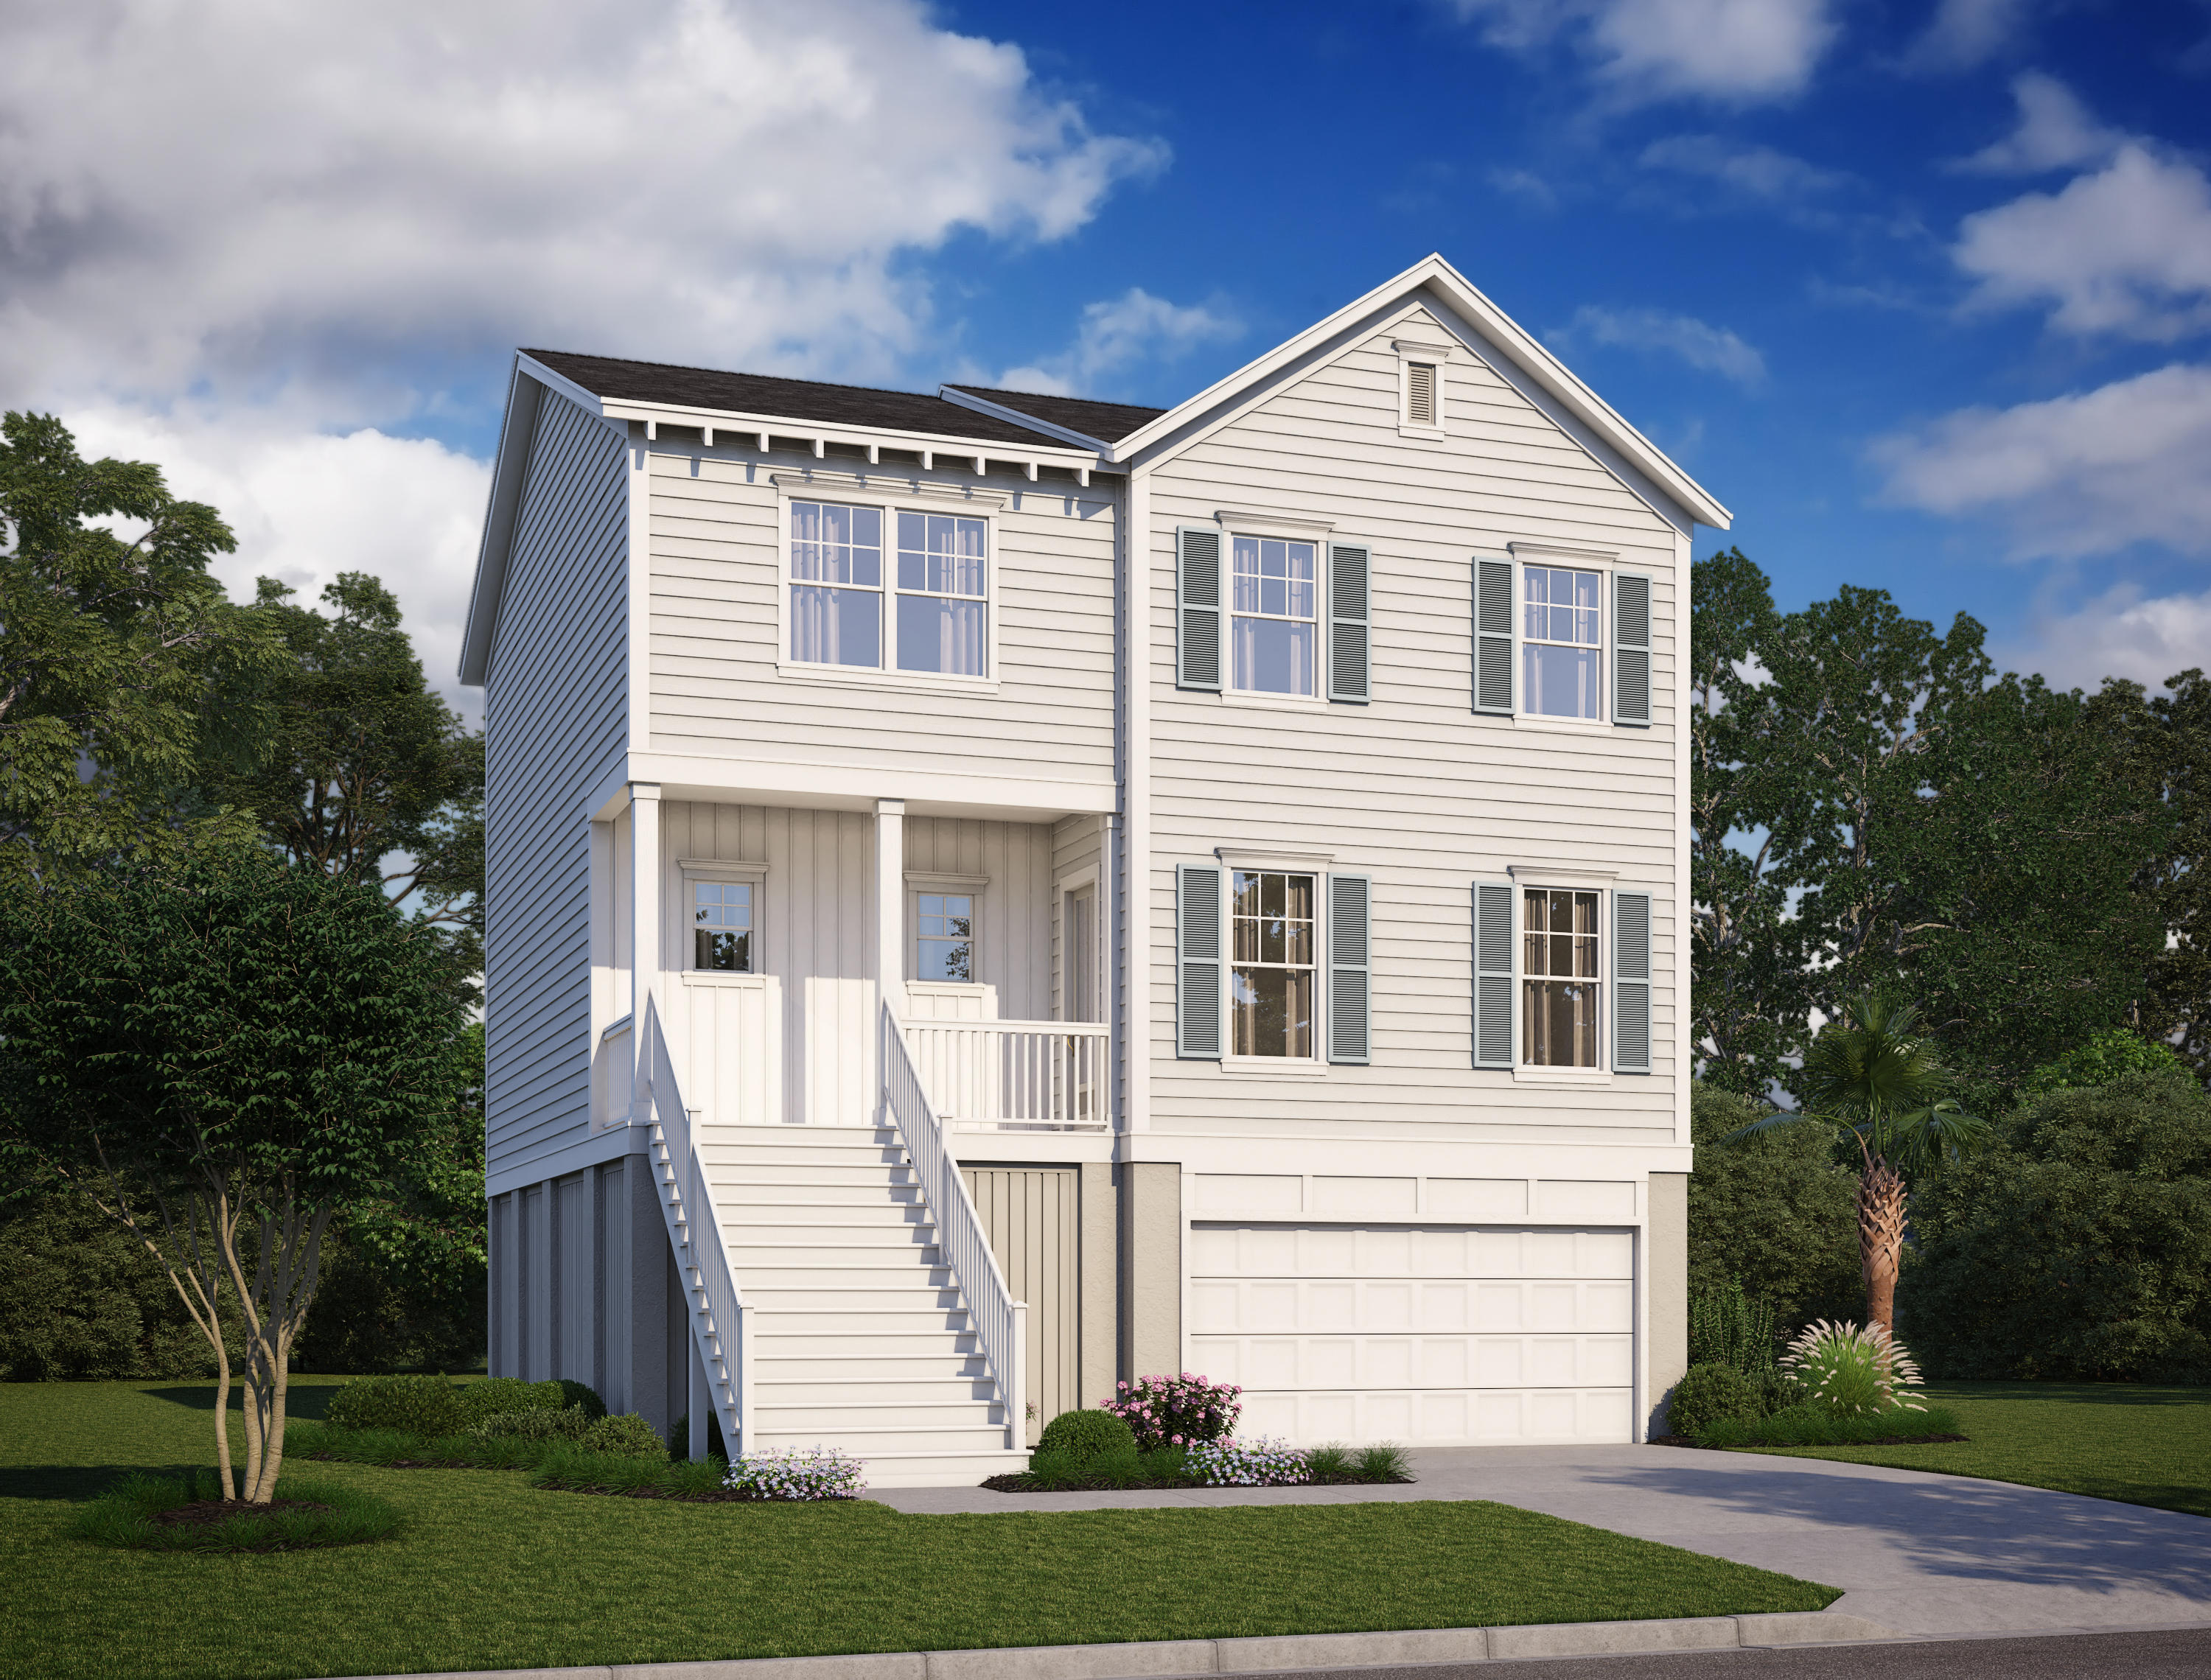 Stratton by the Sound Homes For Sale - 1419 Stratton Place, Mount Pleasant, SC - 18